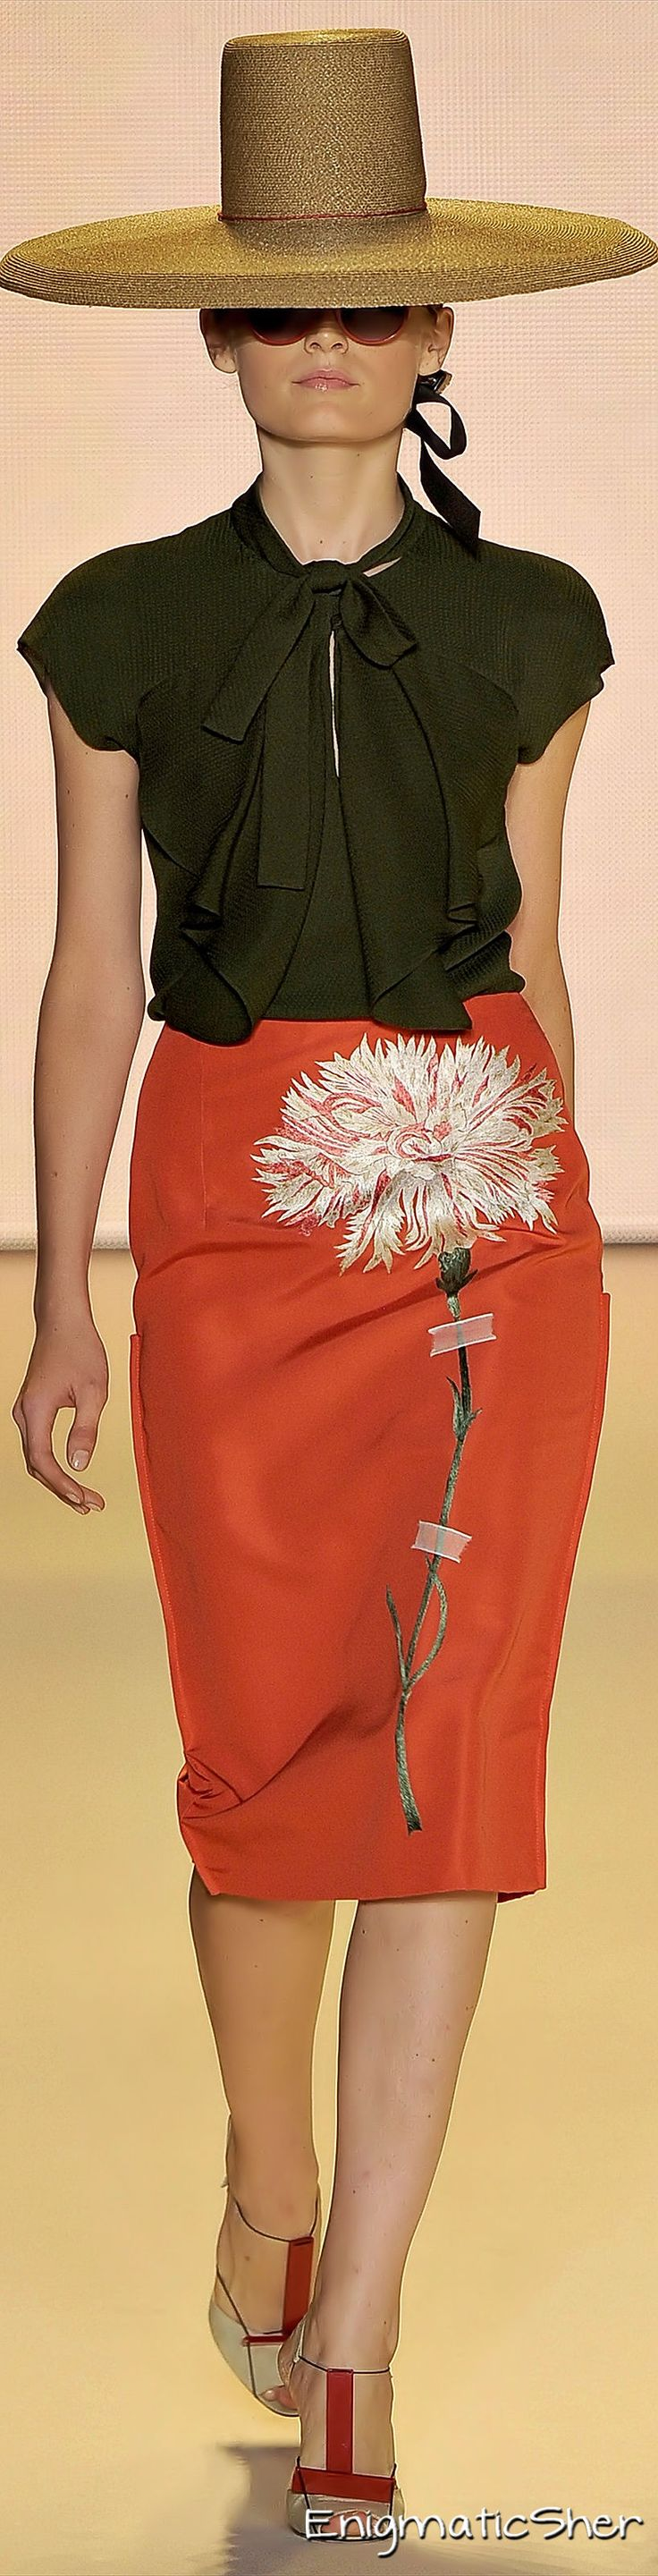 Carolina Herrera Spring Summer 2011 Ready-To-Wear